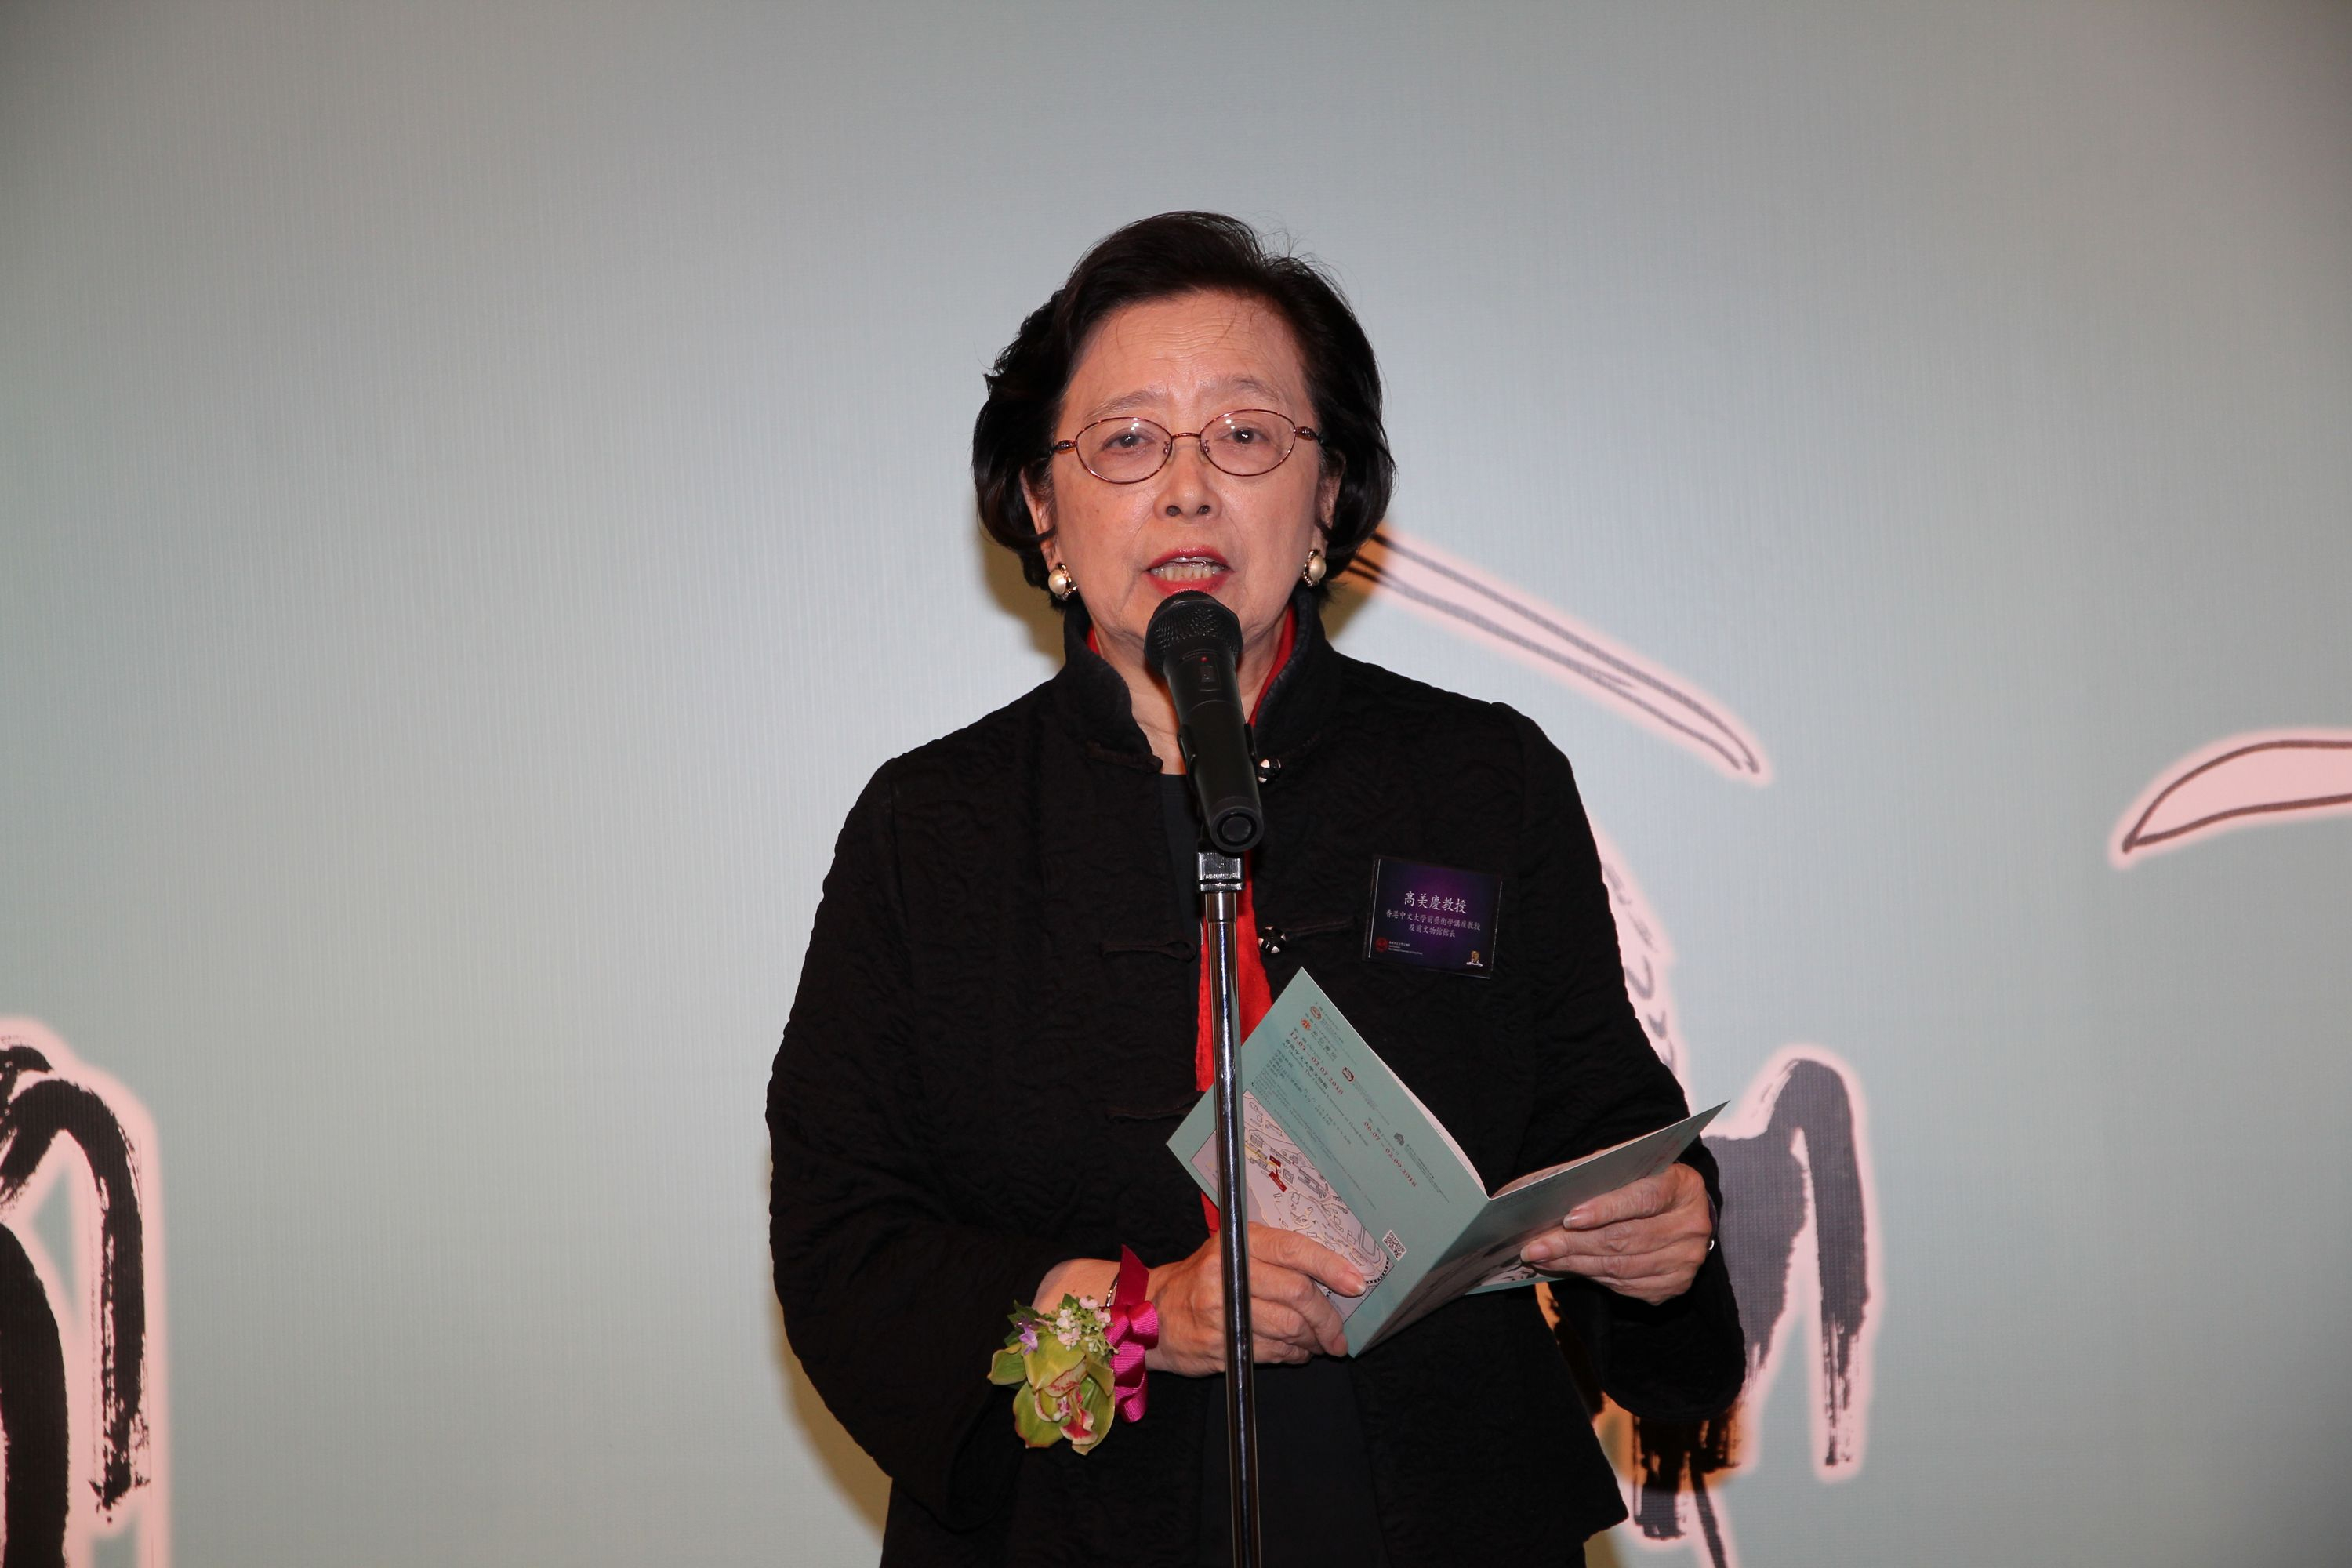 Professor Mayching Kao, former Professor of Fine Arts and former Director of Art Museum, CUHK delivers a speech.